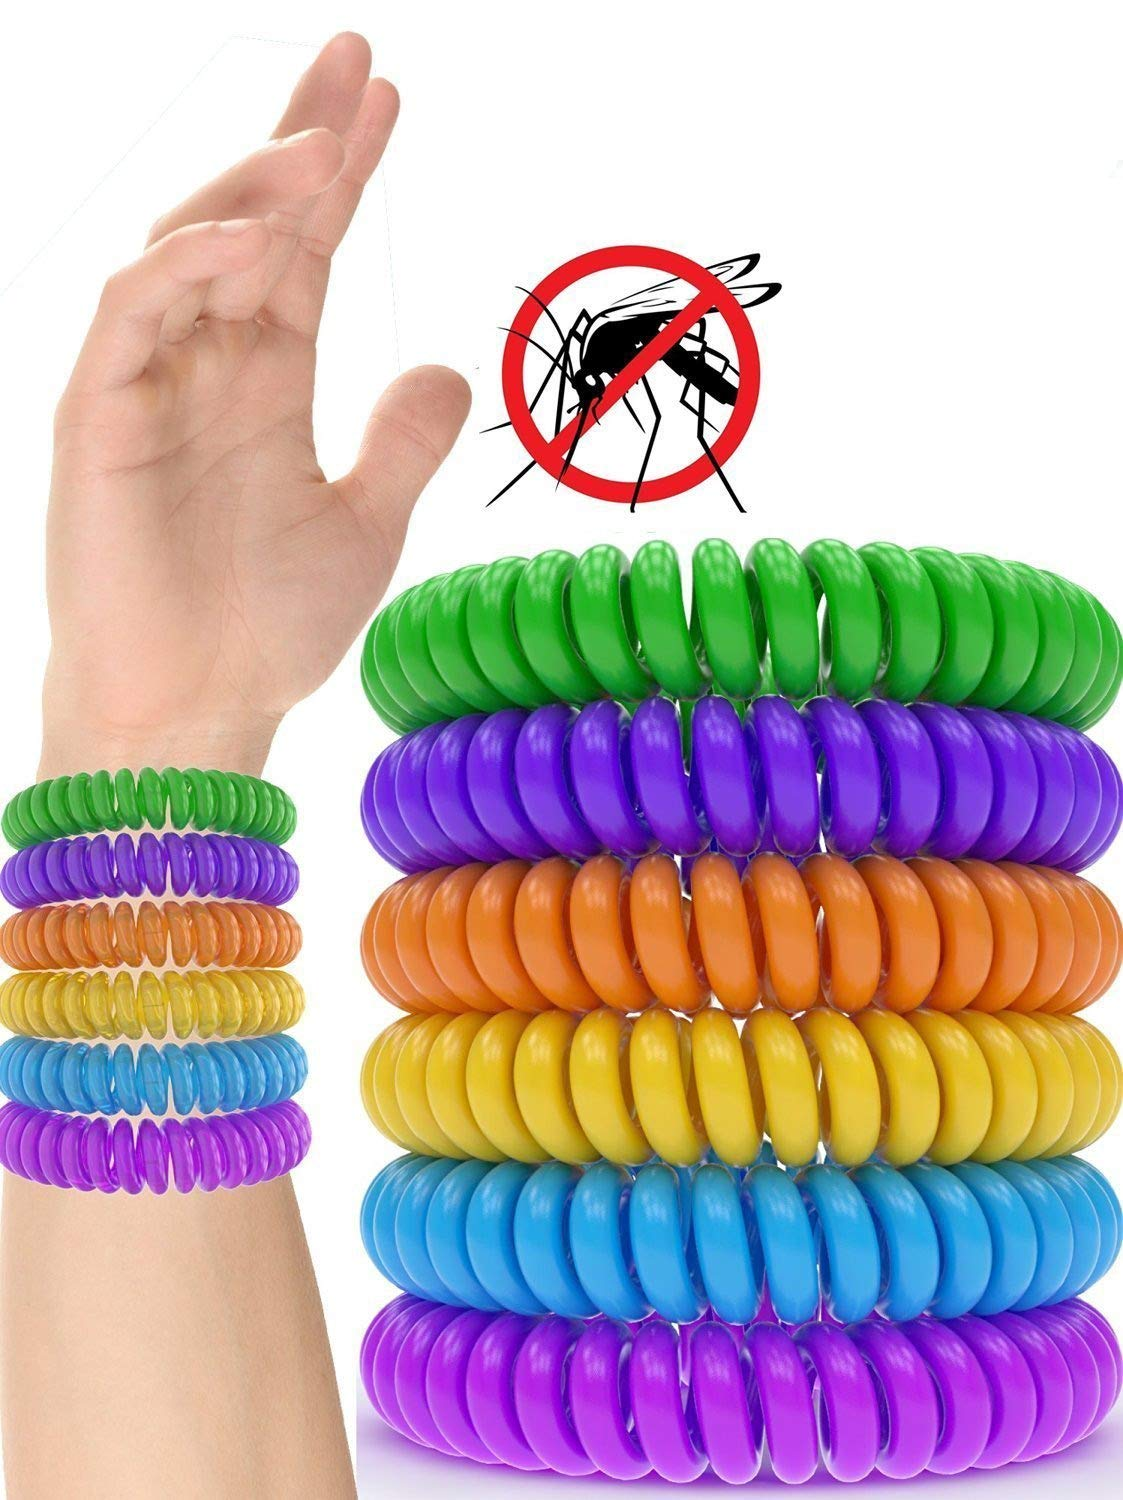 Zekpro 12 Pack Mosquito Repellent Bracelet Band - [320Hrs of Protection] Pest Control Insect Bug Repeller - Natural Indoor/Outdoor Insects - Best Products